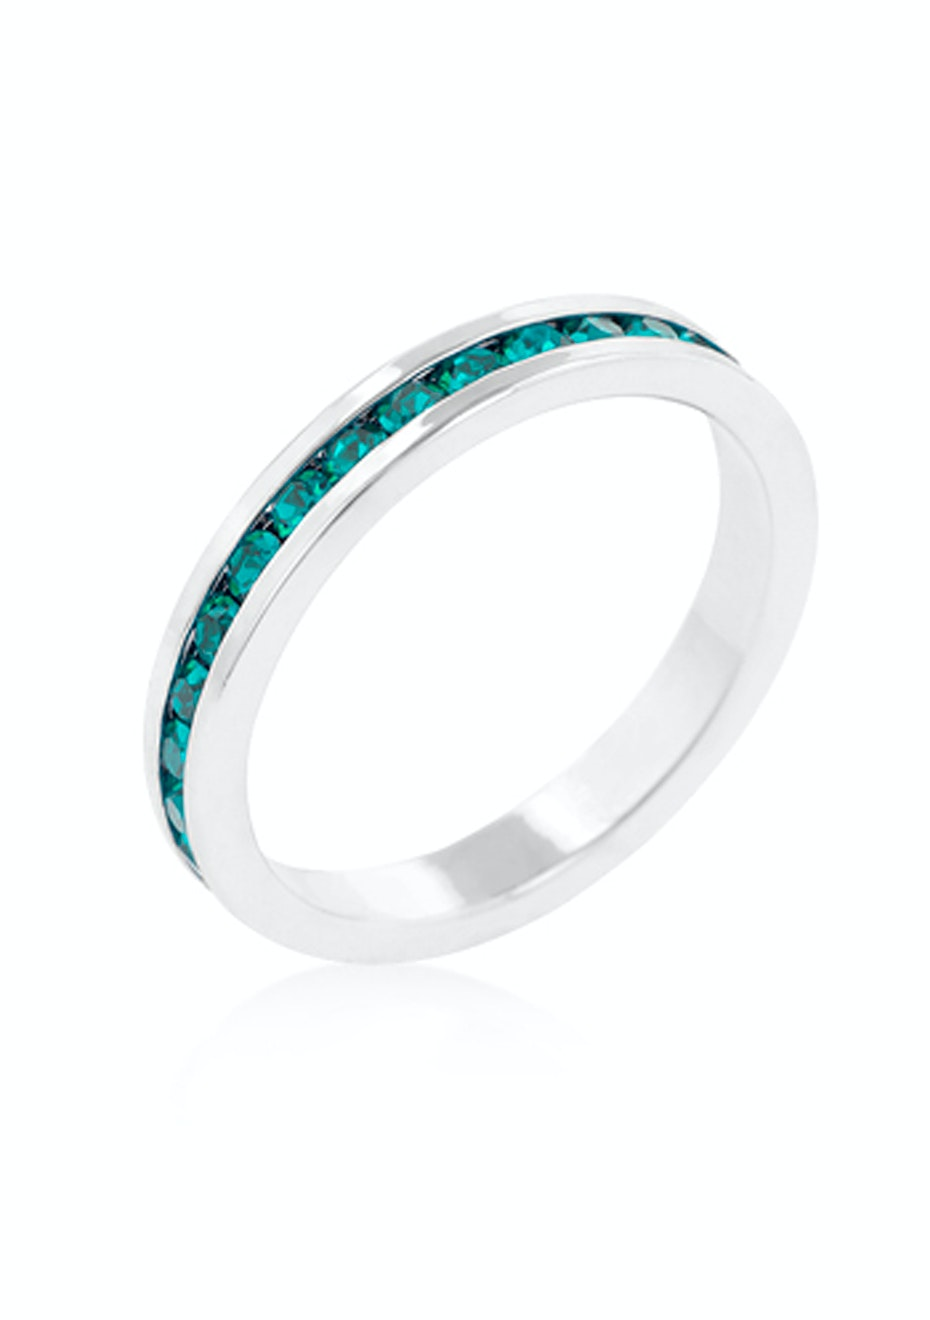 Stackable Ring - White Gold w Blue Embellished with Crystals from Swarovski